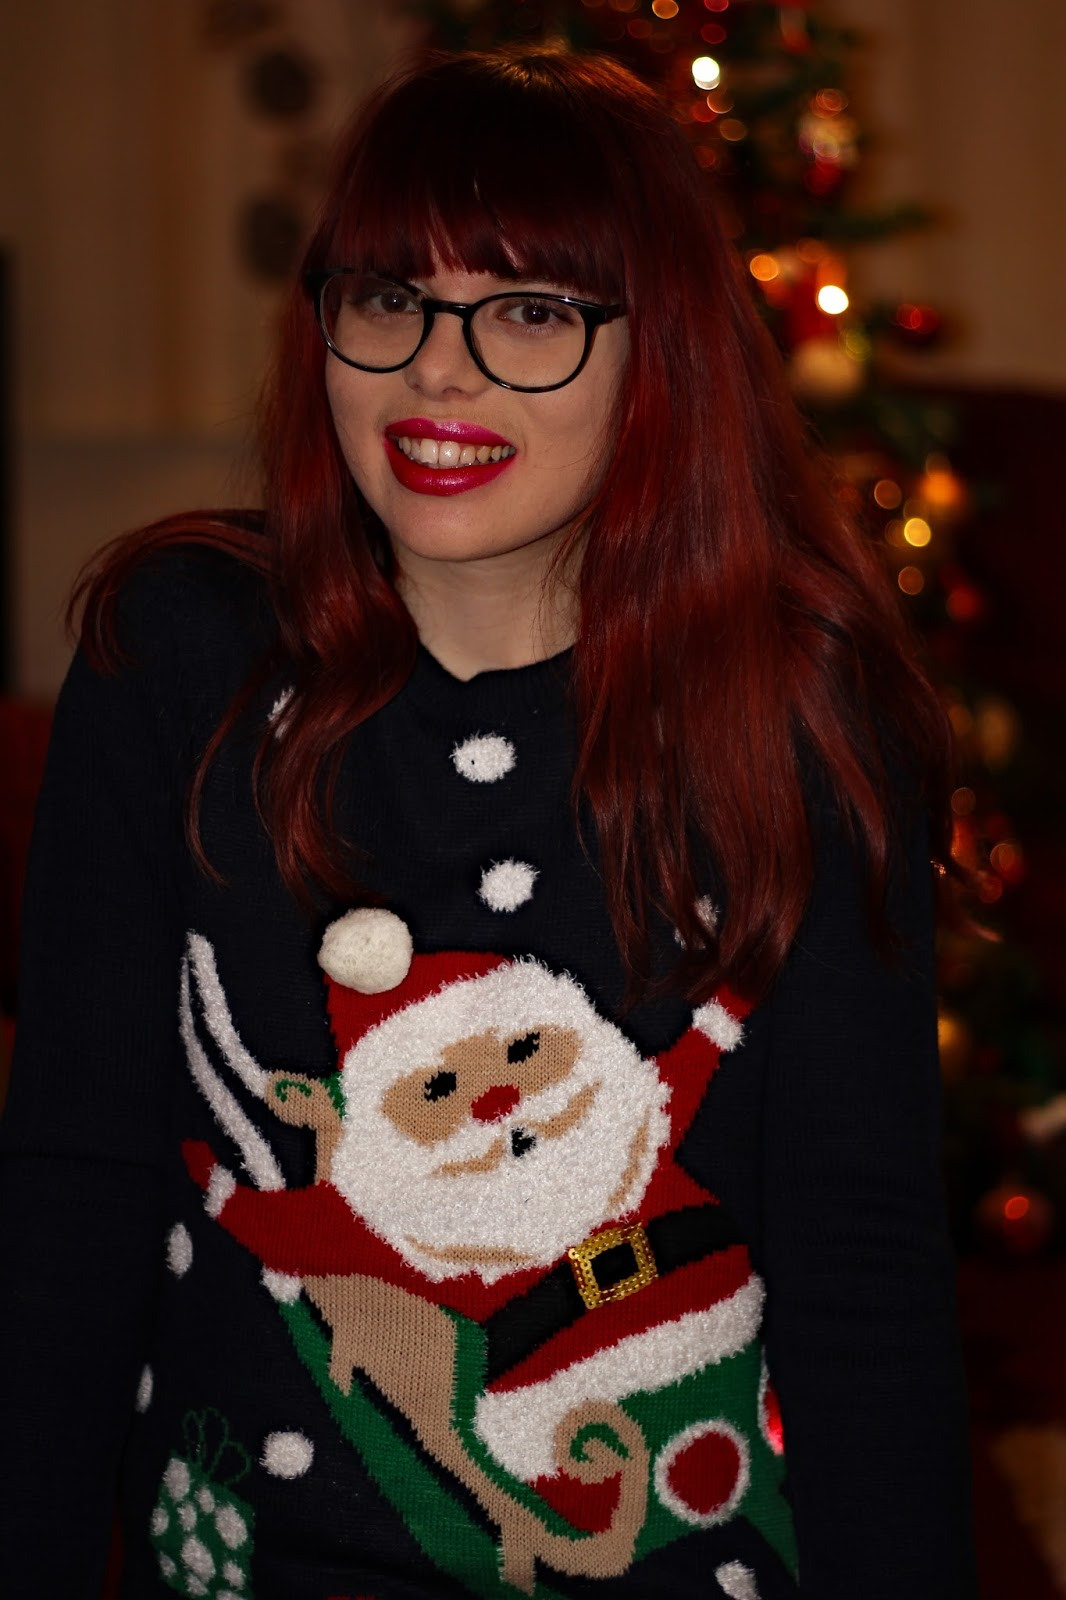 8 Christmas Jumpers You Need In Your Life Xmas fun light up happy women's men's tacky wacky classic